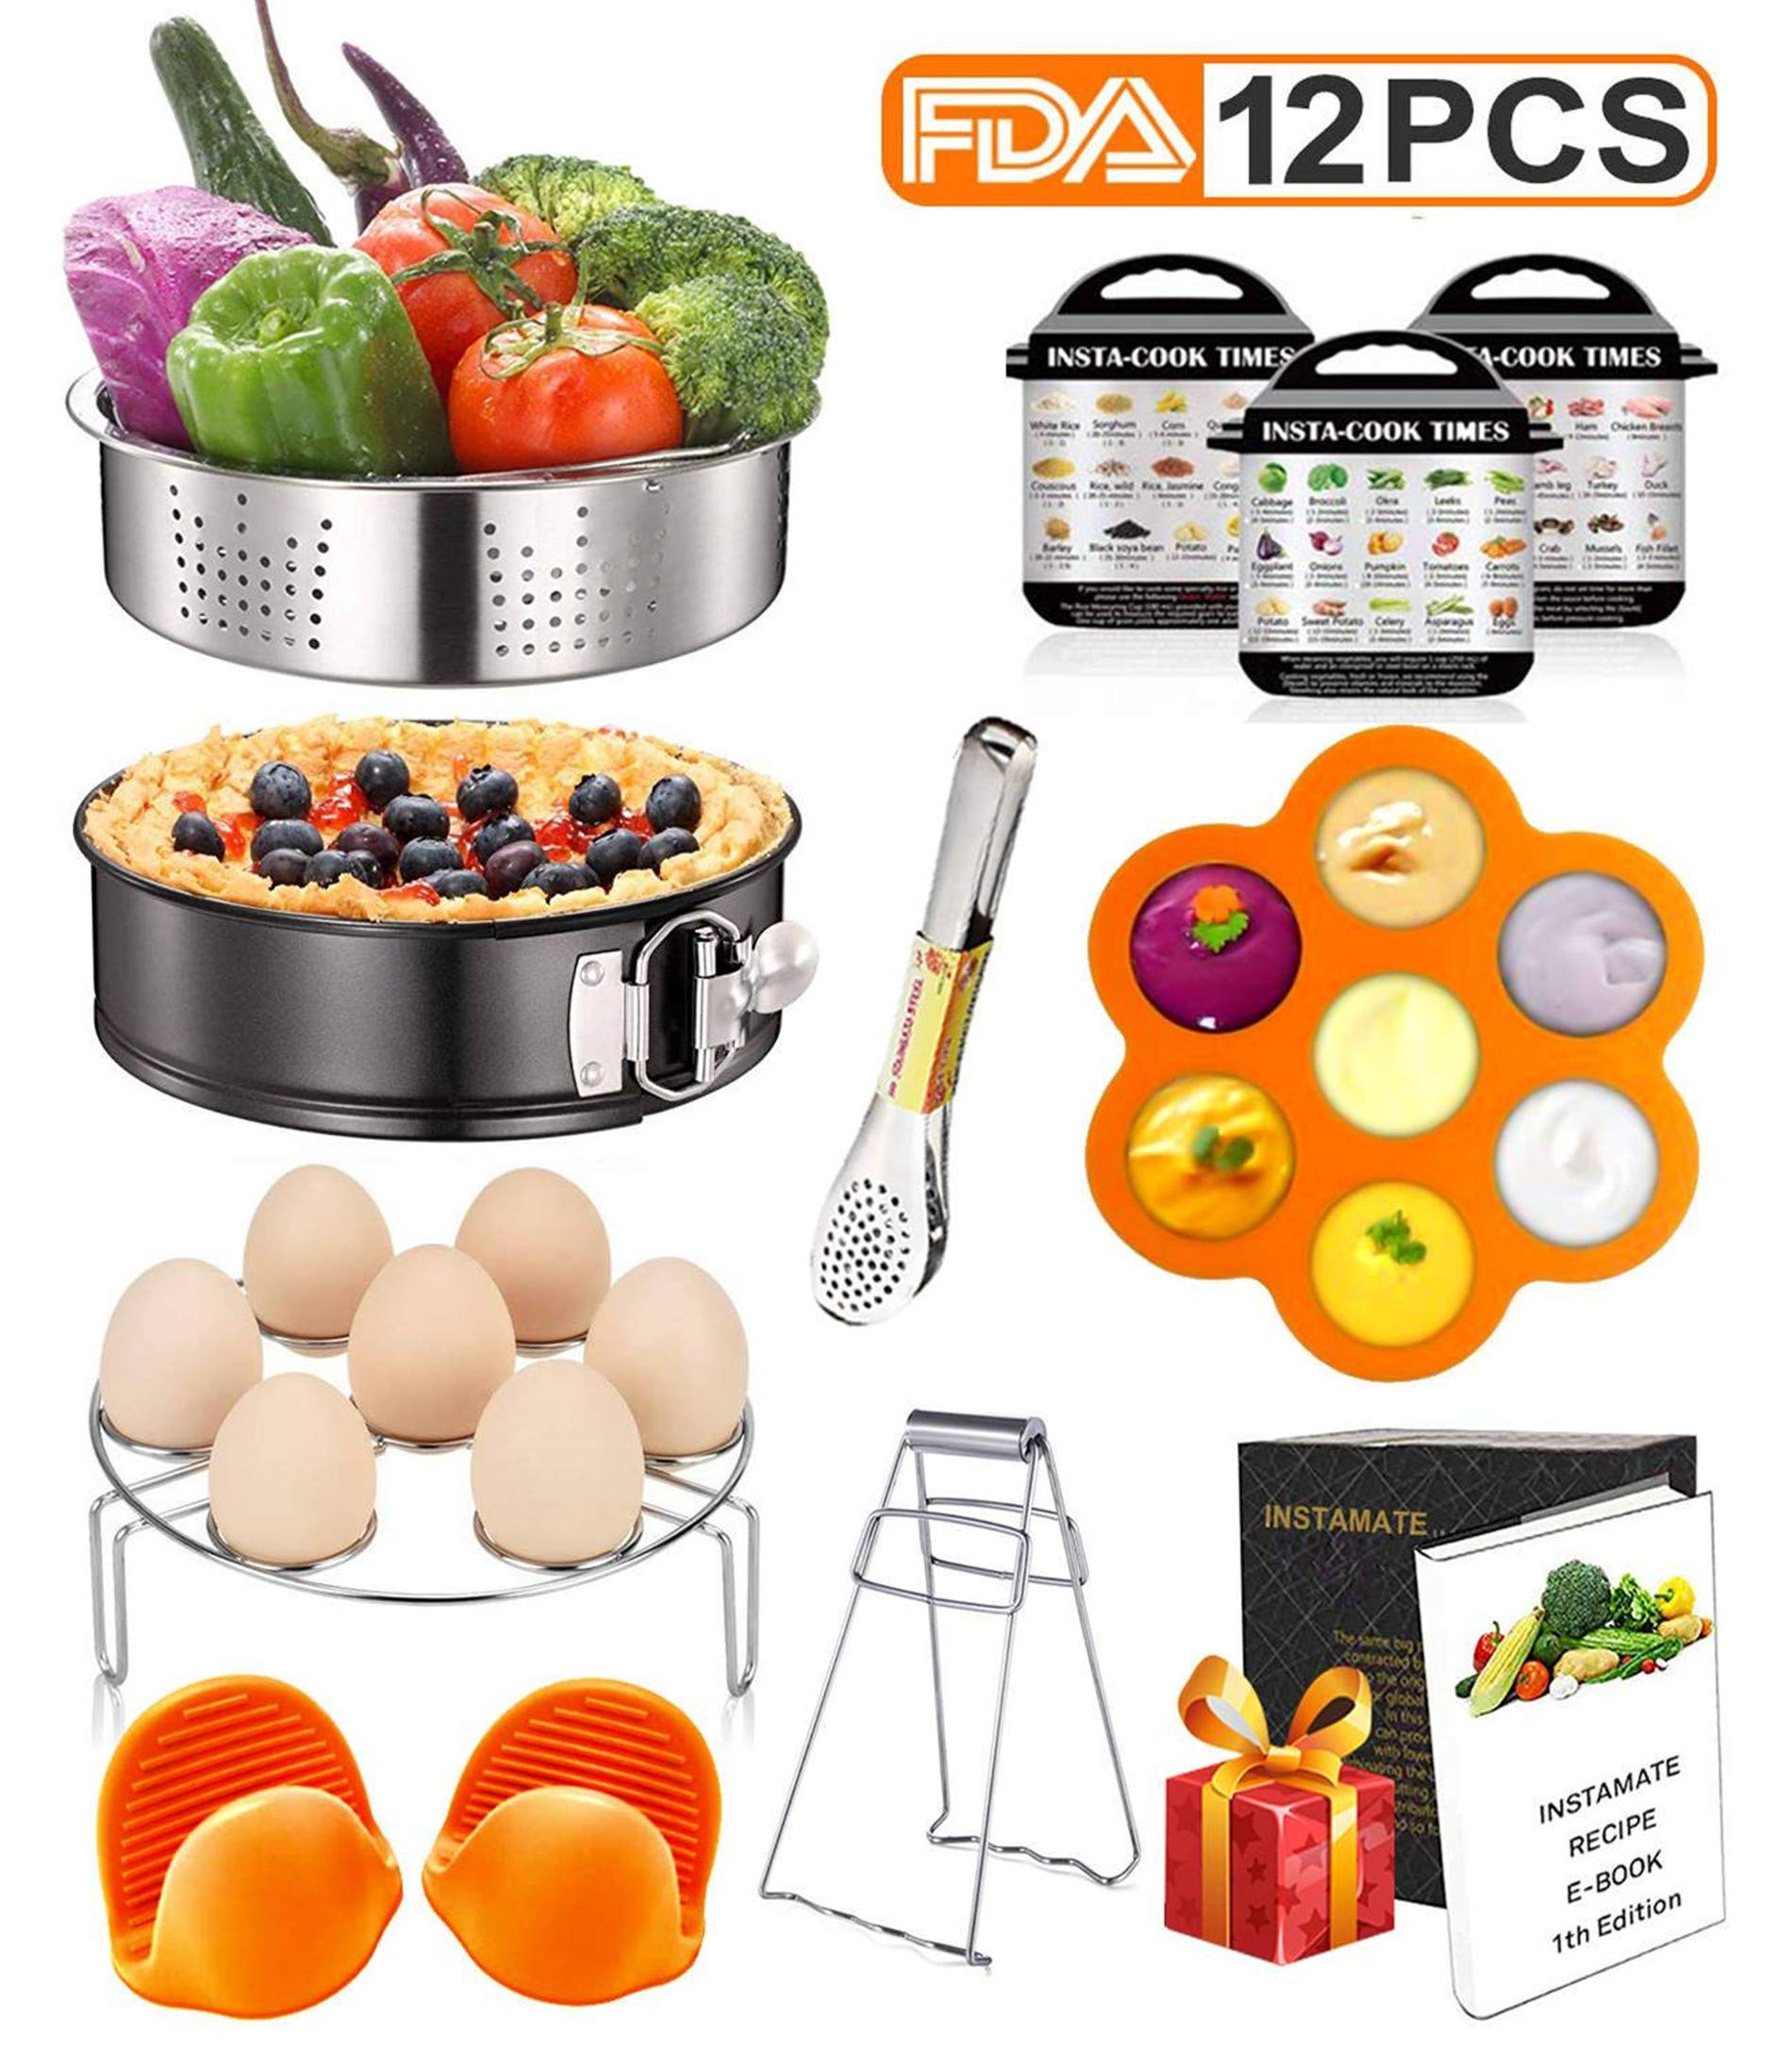 12 Pcs Instant Pot Accessories Set Compatible with 6 8 Qt, Pressure Cooker Accessories with Steamer Basket, Cake Pan, Rack, Egg Bites Mold, Magnets, Bowl Clip, Tongs, Gloves, Ebook (orange)